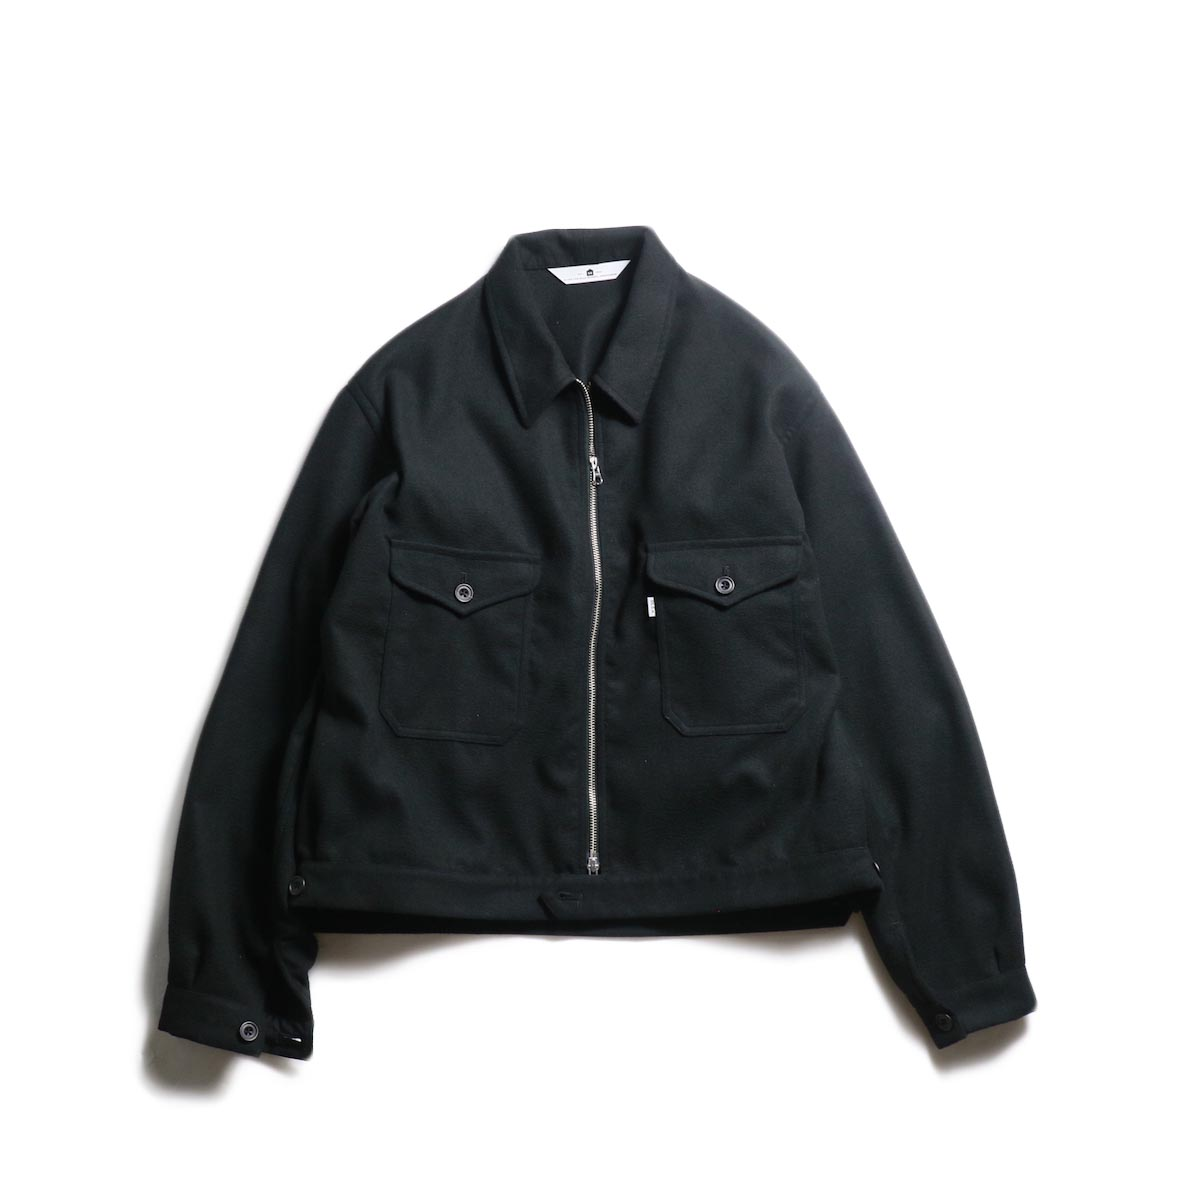 SGGM / Worker Zip Blouson (Black)